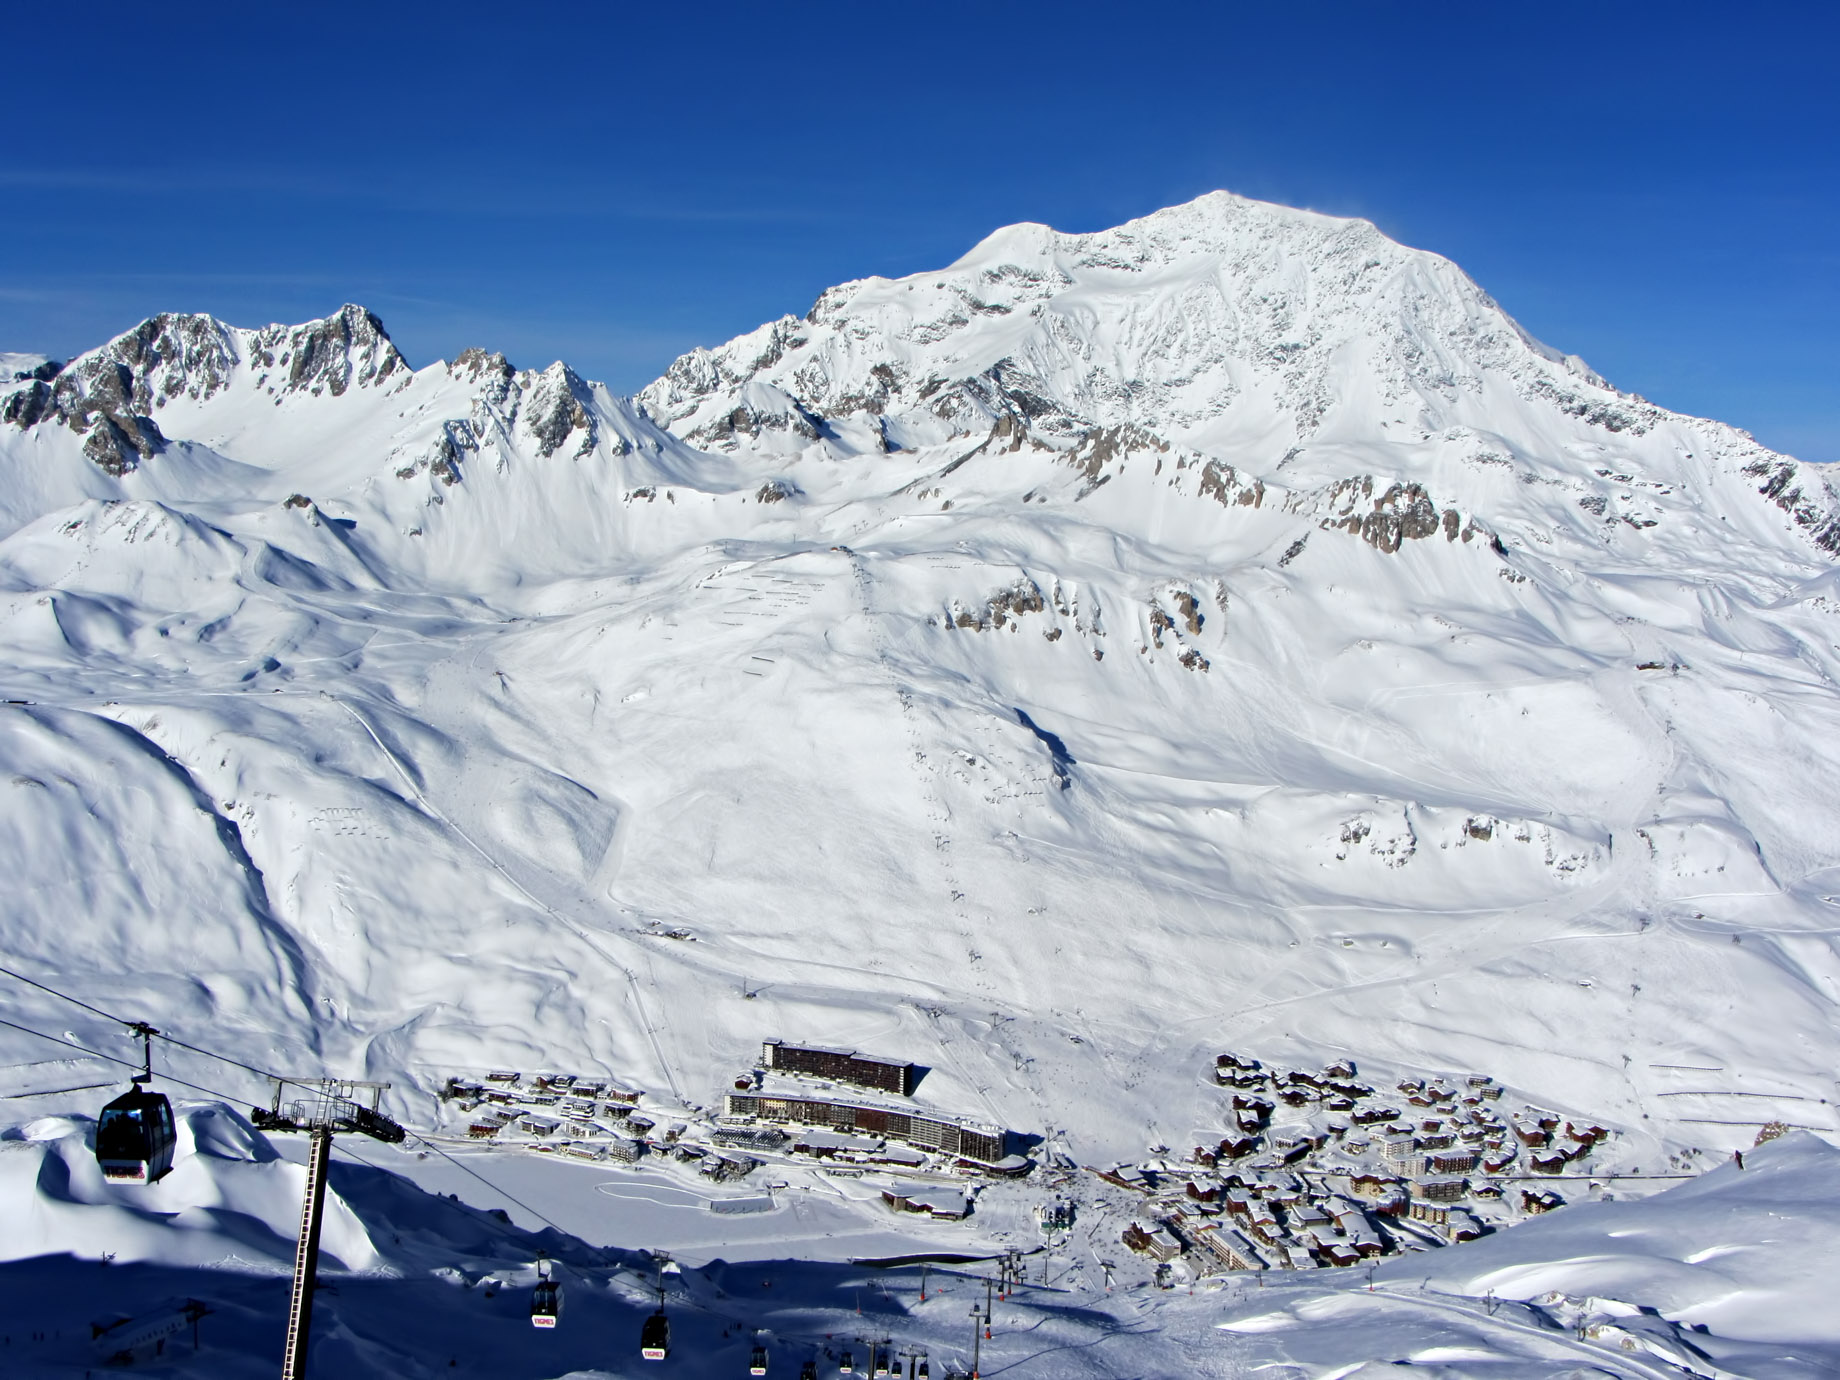 Tignes – French Alps Mountain Resort – An Exclusive Très Chic Luxury Winter Paradise